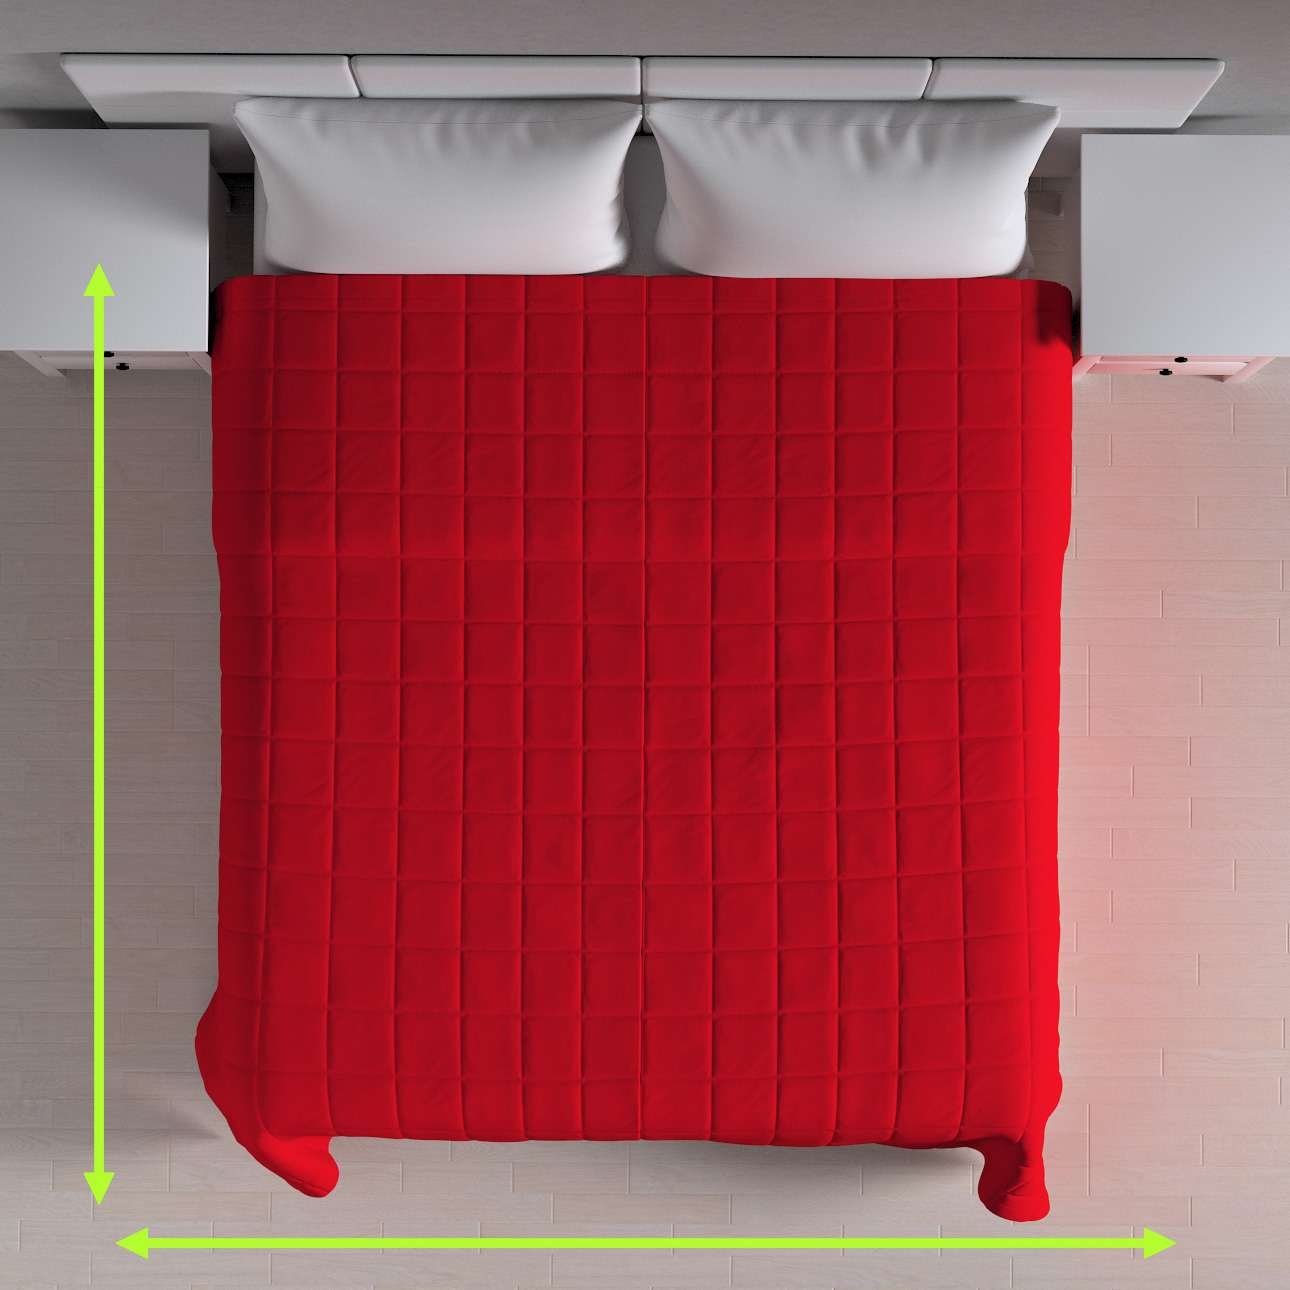 Quilted throw (check quilt pattern) in collection Chenille, fabric: 702-24